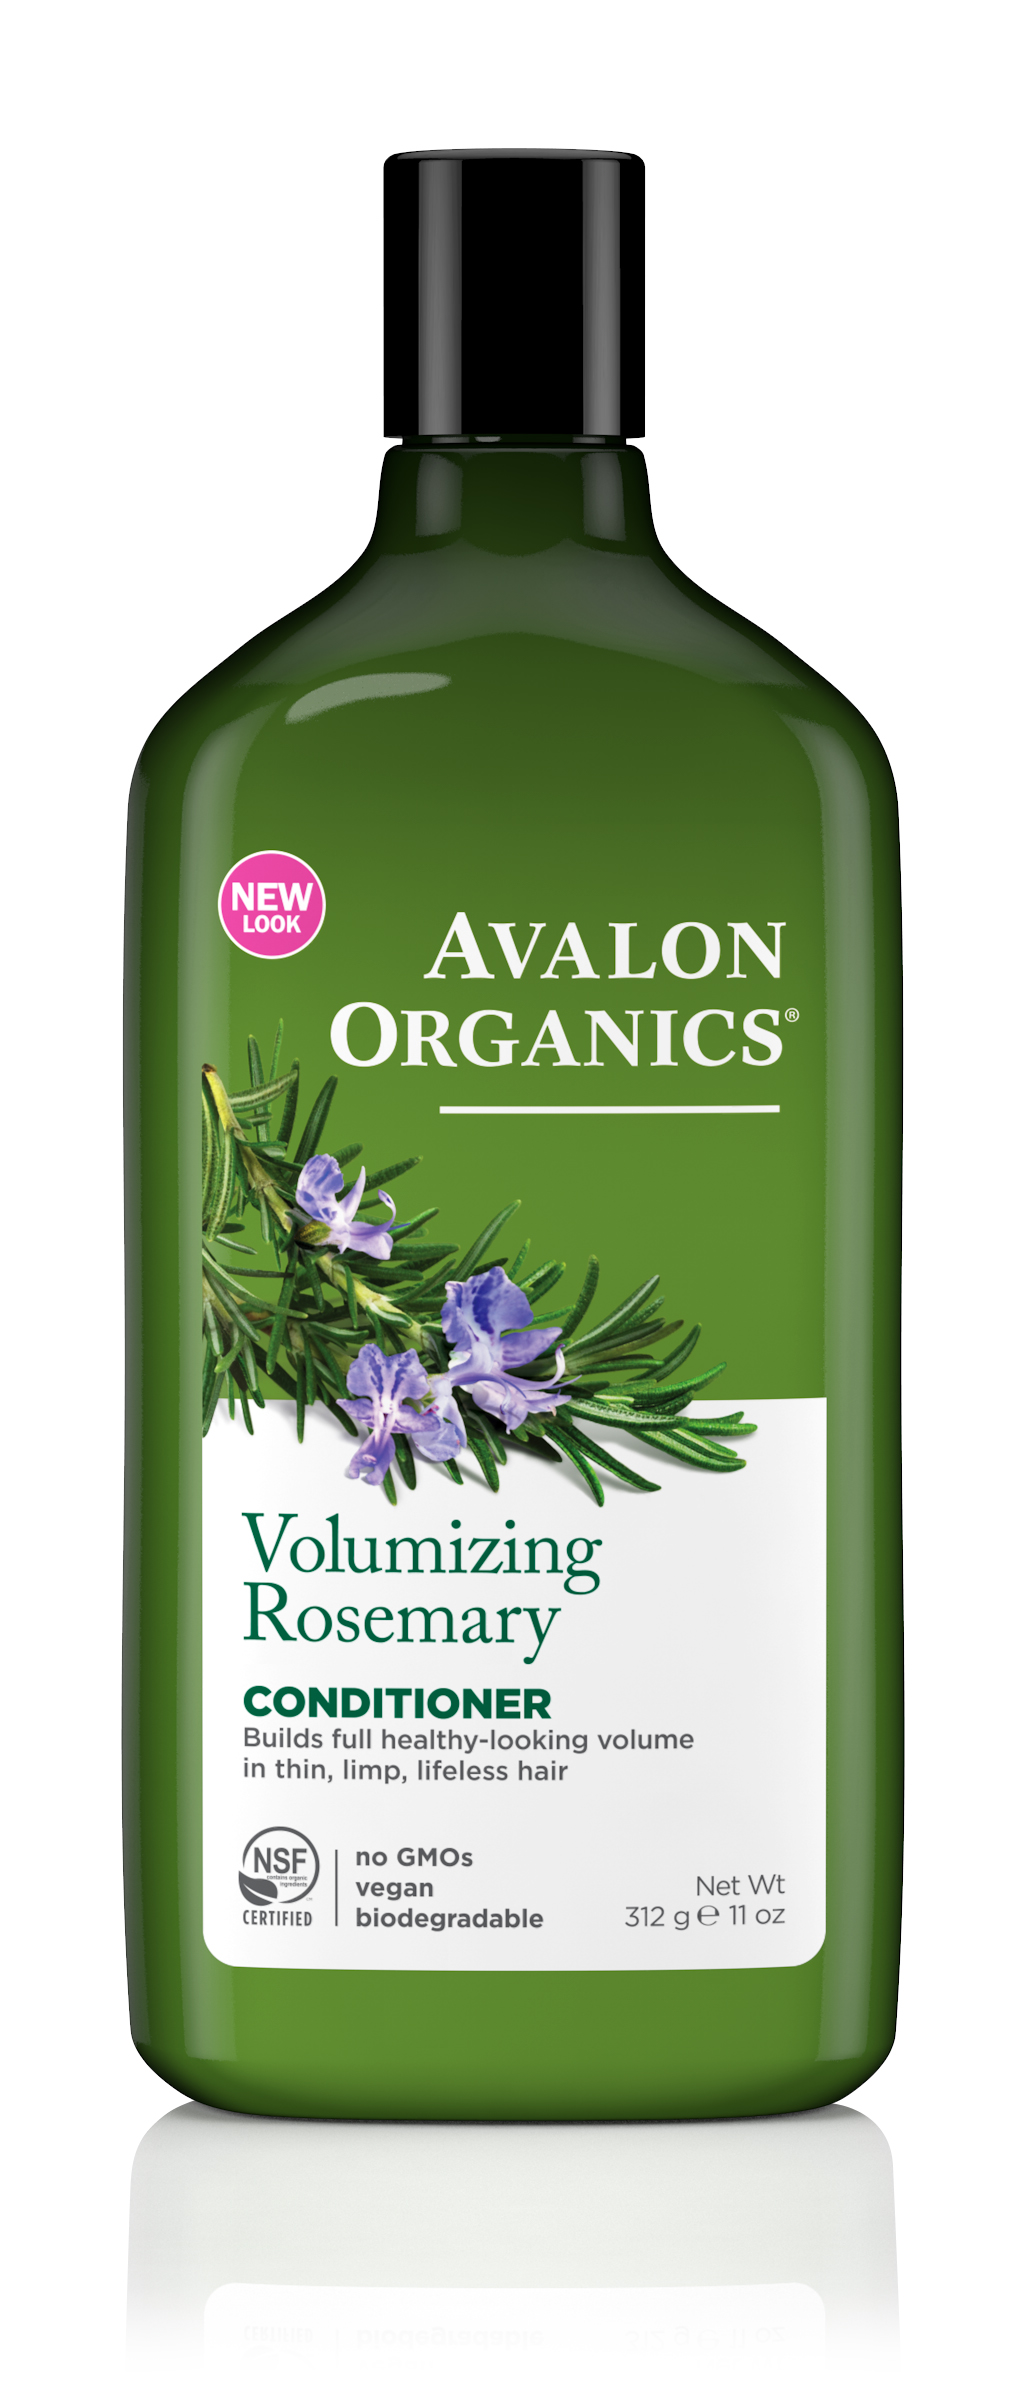 Avalon Organics Rosemary Conditioner